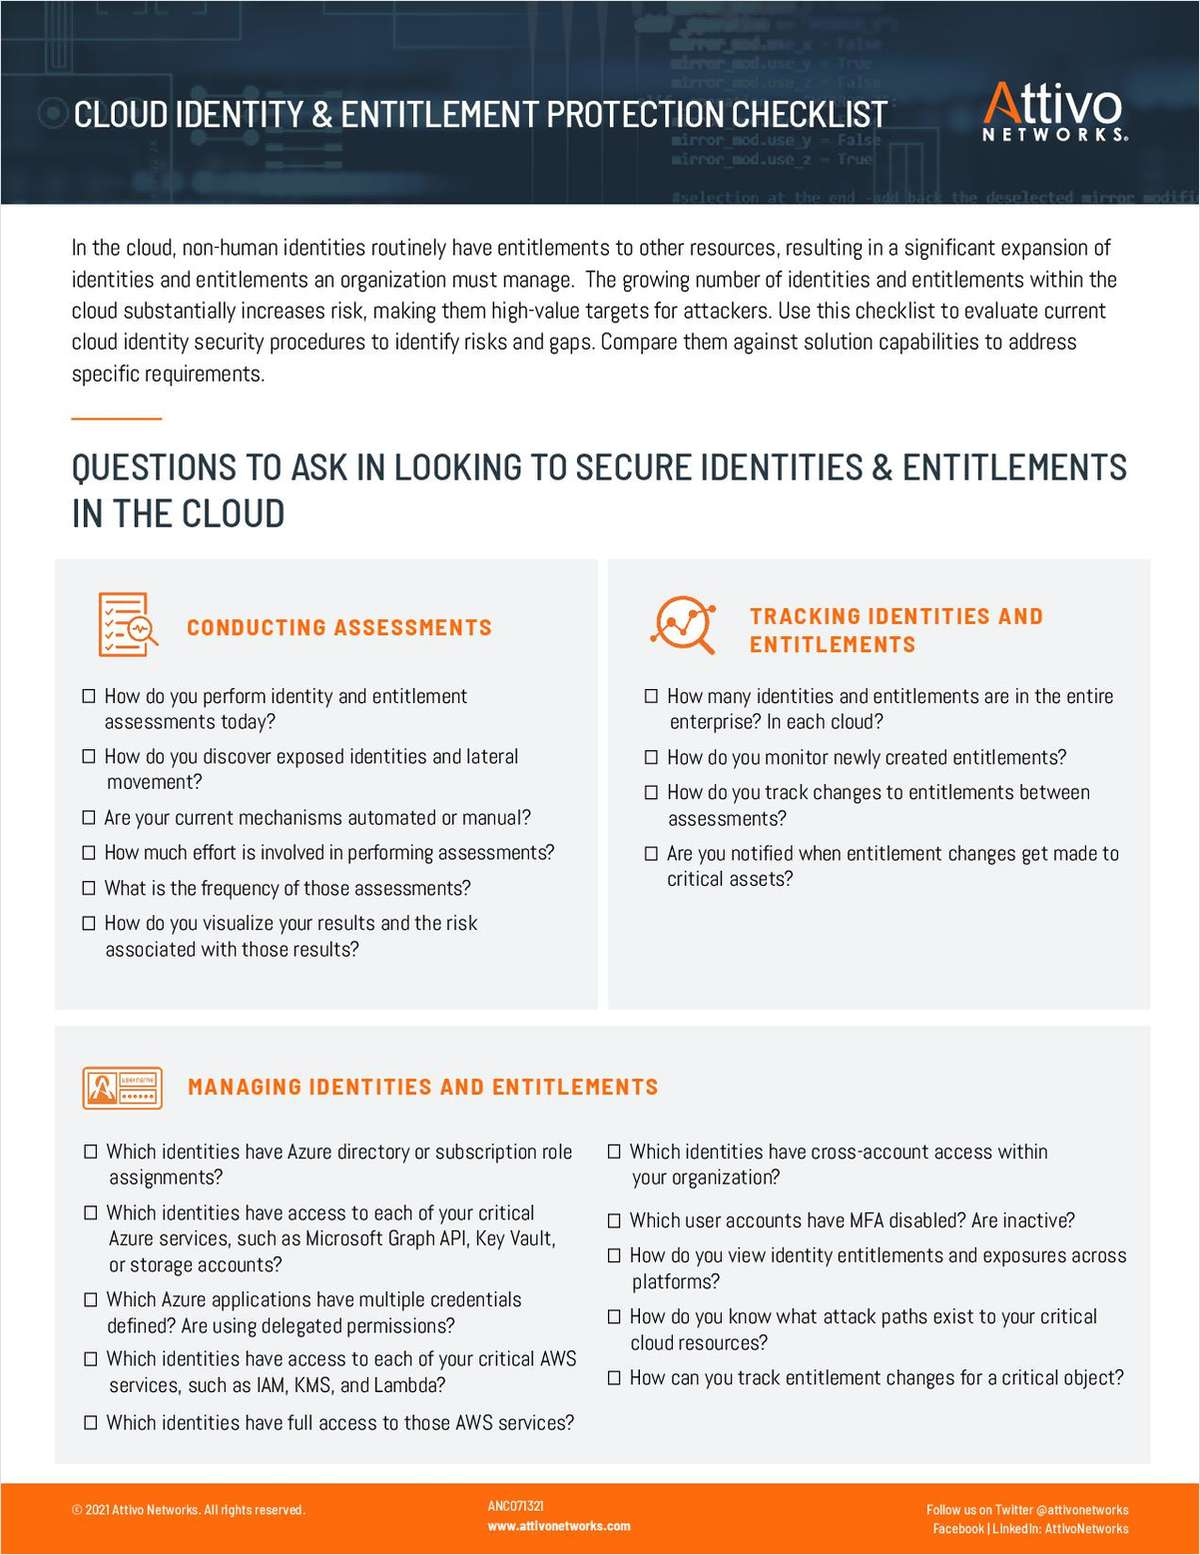 Evaluating Your Cloud Identity & Entitlement Security Procedures to Identify Risks and Gaps